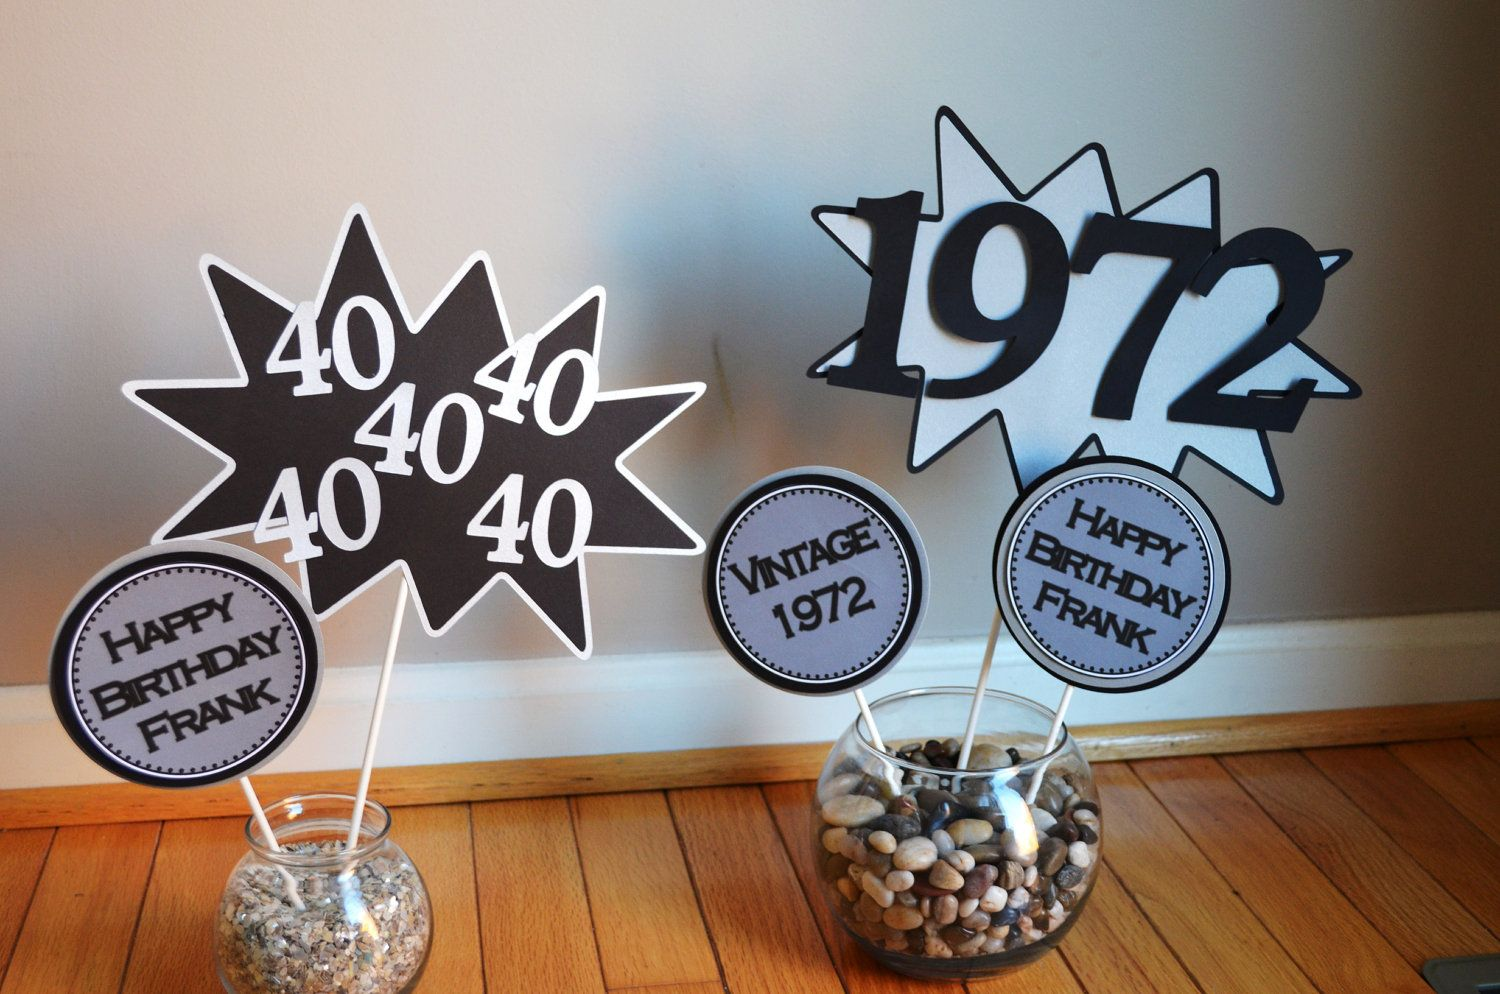 40th Birthday Centerpiece Vintage 1972 2450 via Etsy Photo